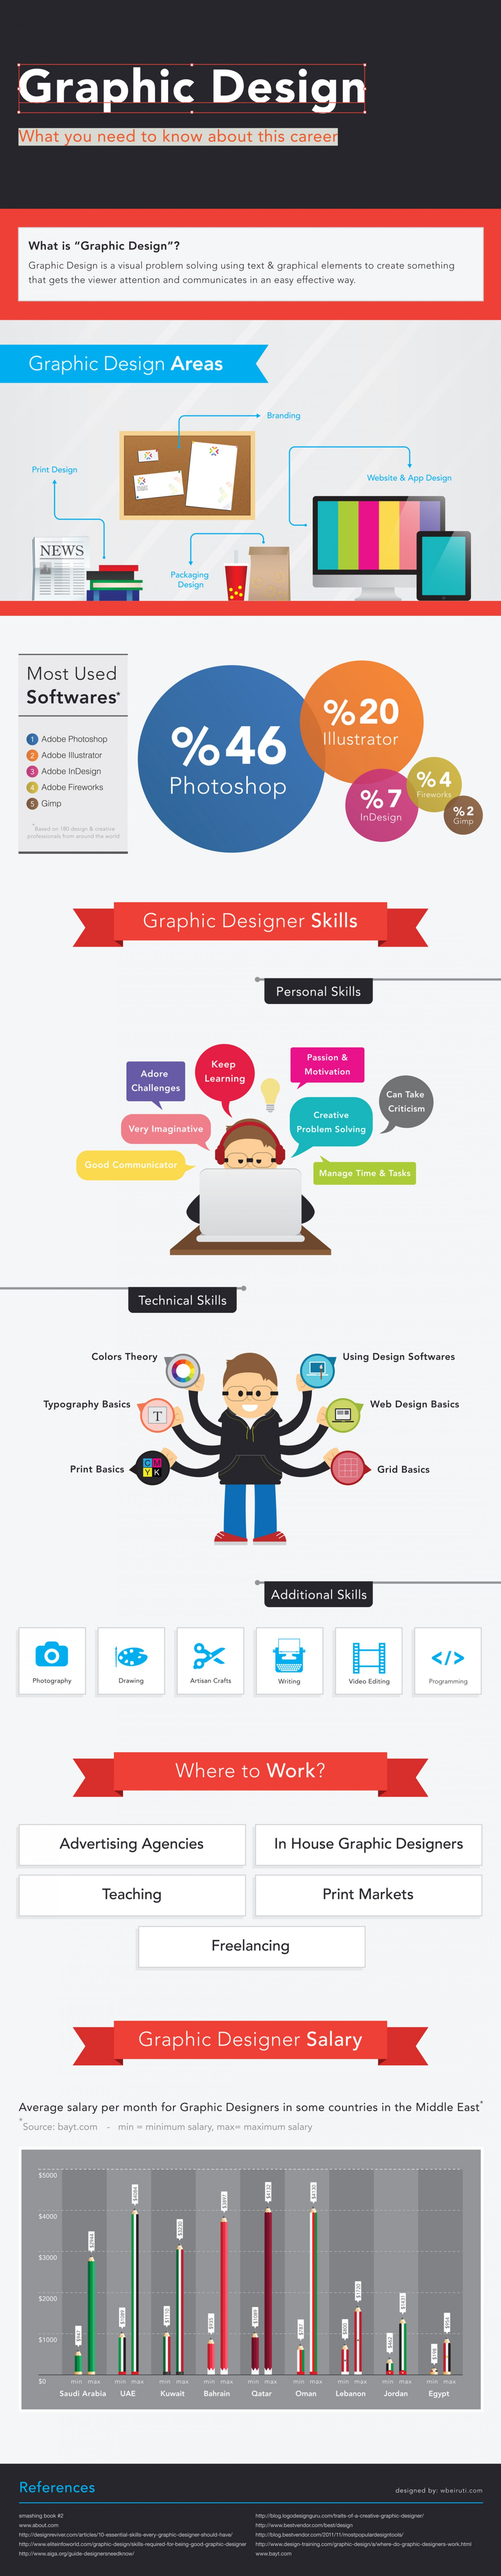 Striving To Be A Graphic Designer In 2020 Graphic Design Careers Graphic Design Infographic Graphic Designer Salary